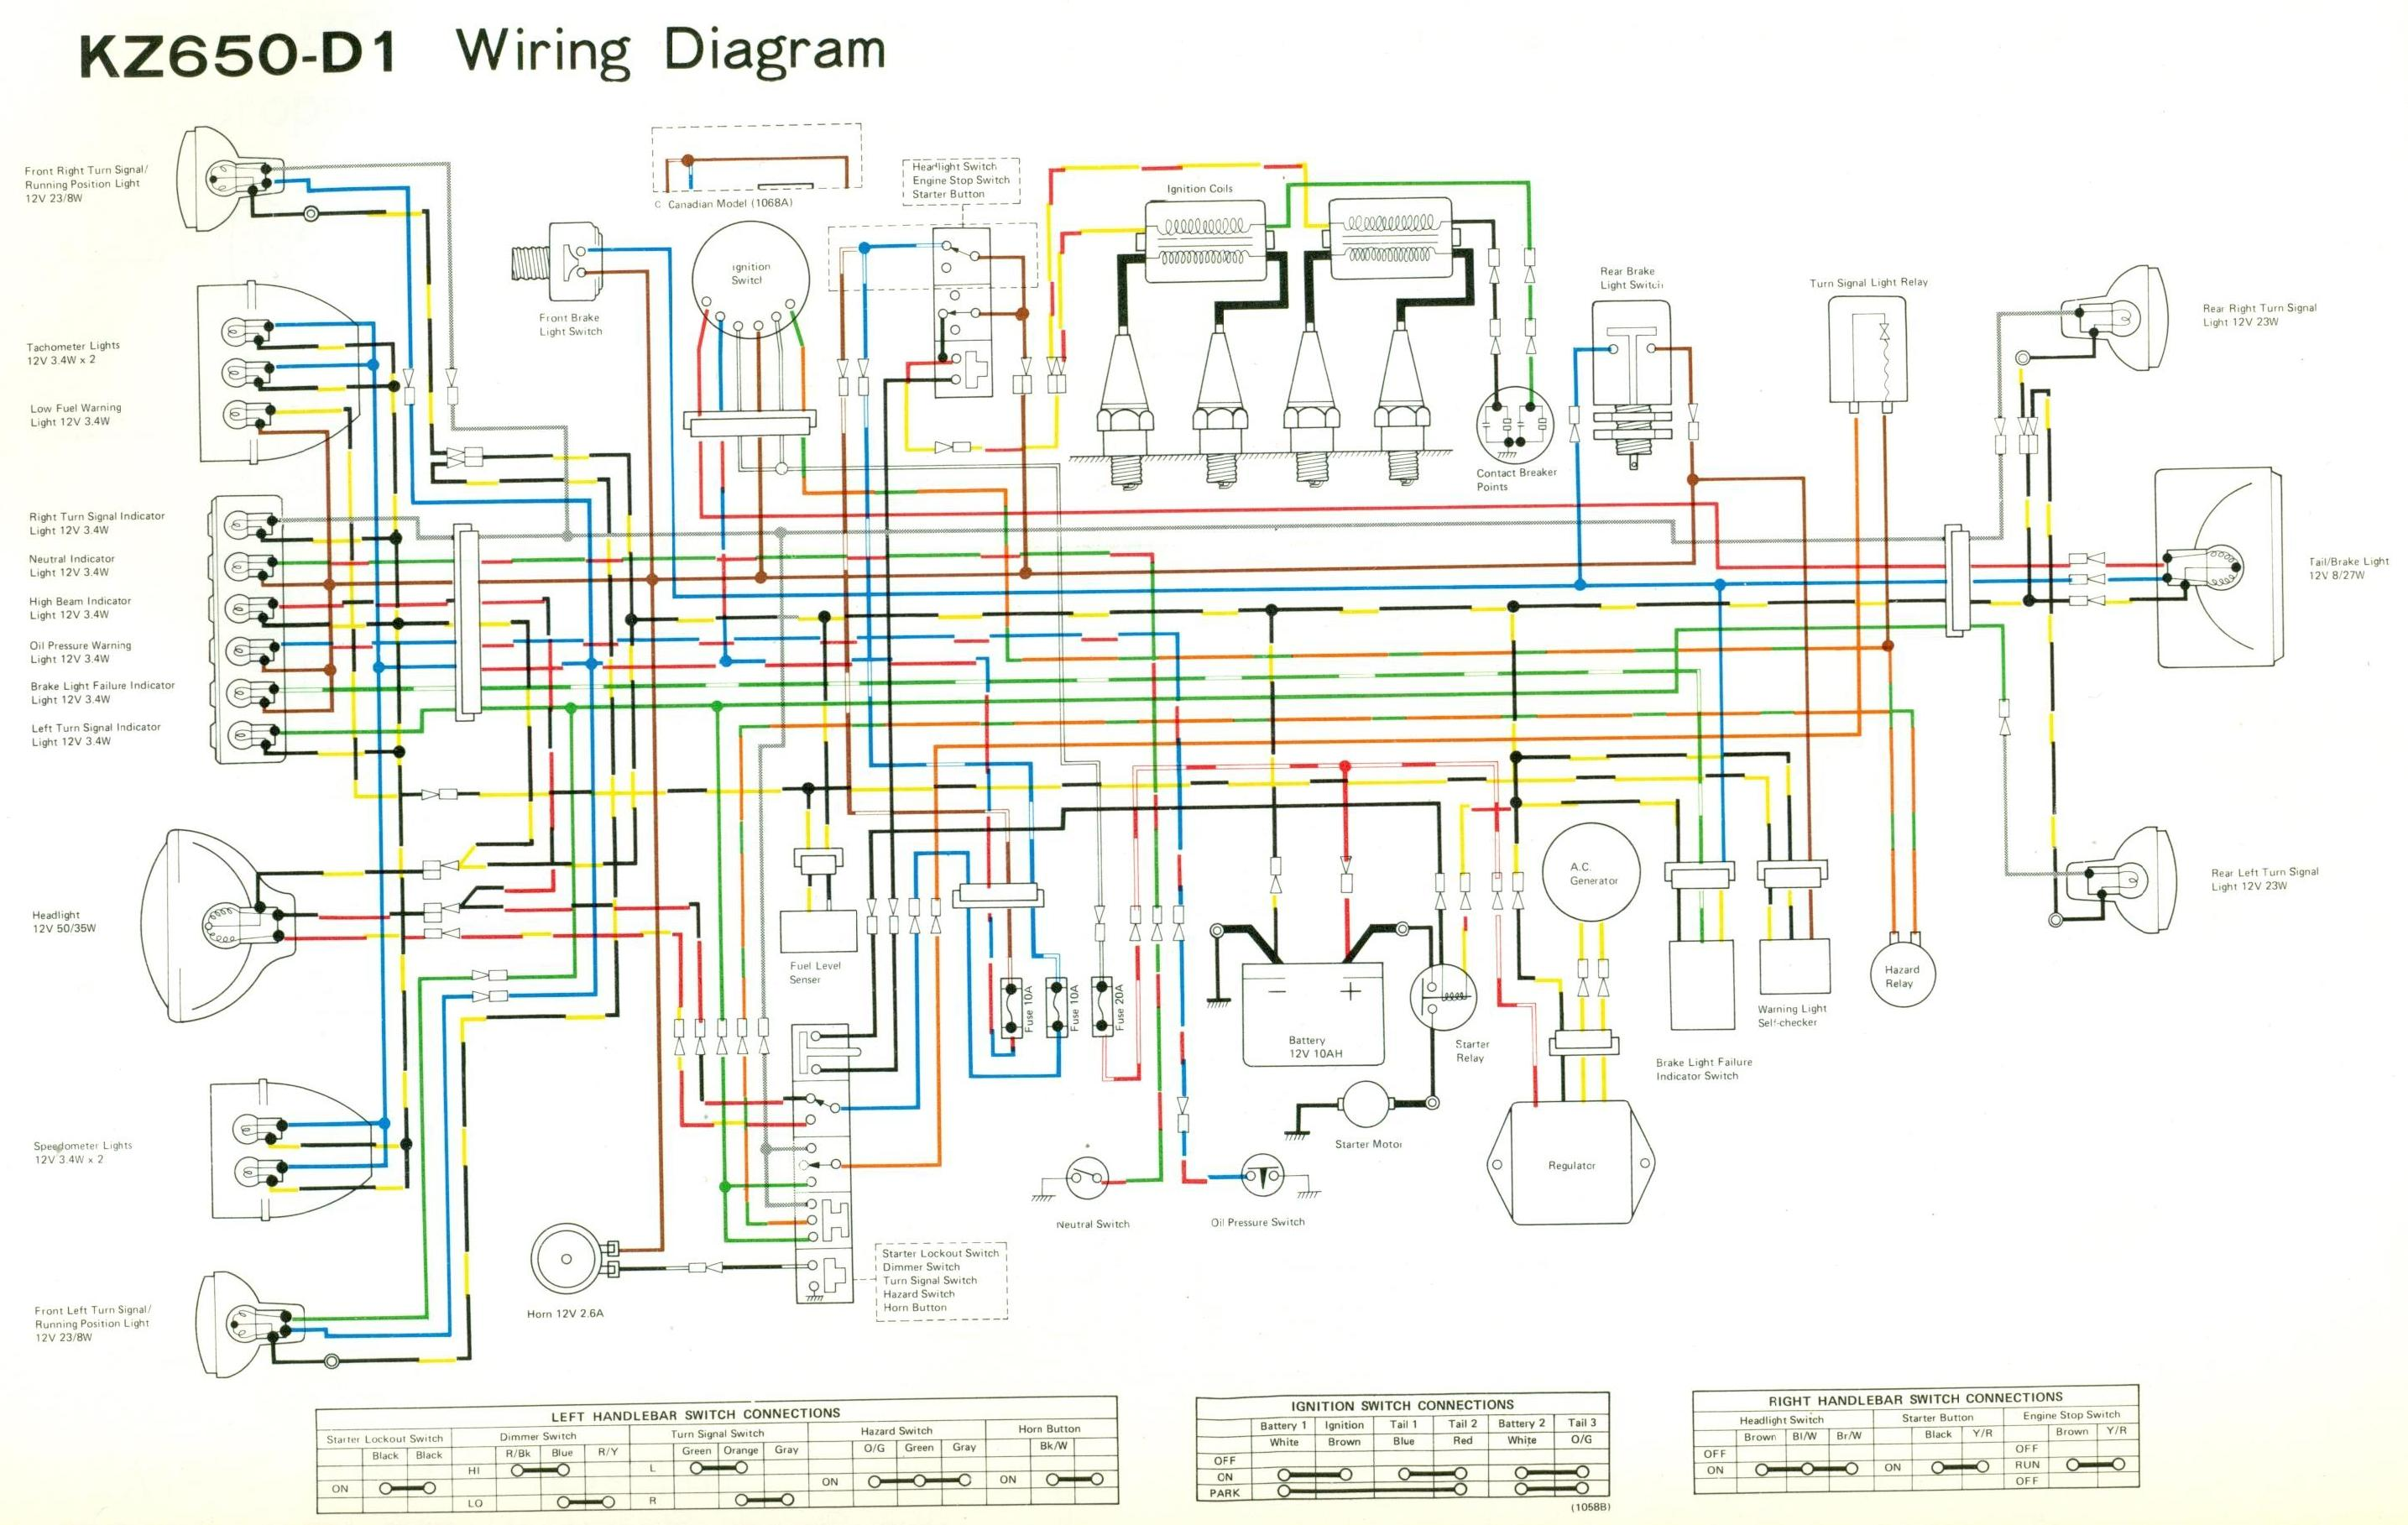 1970 Kawasaki 250 Wiring Diagram Schematics Diagrams Mercury Marauder Rh Oregonmotorcycleparts Com Chopper